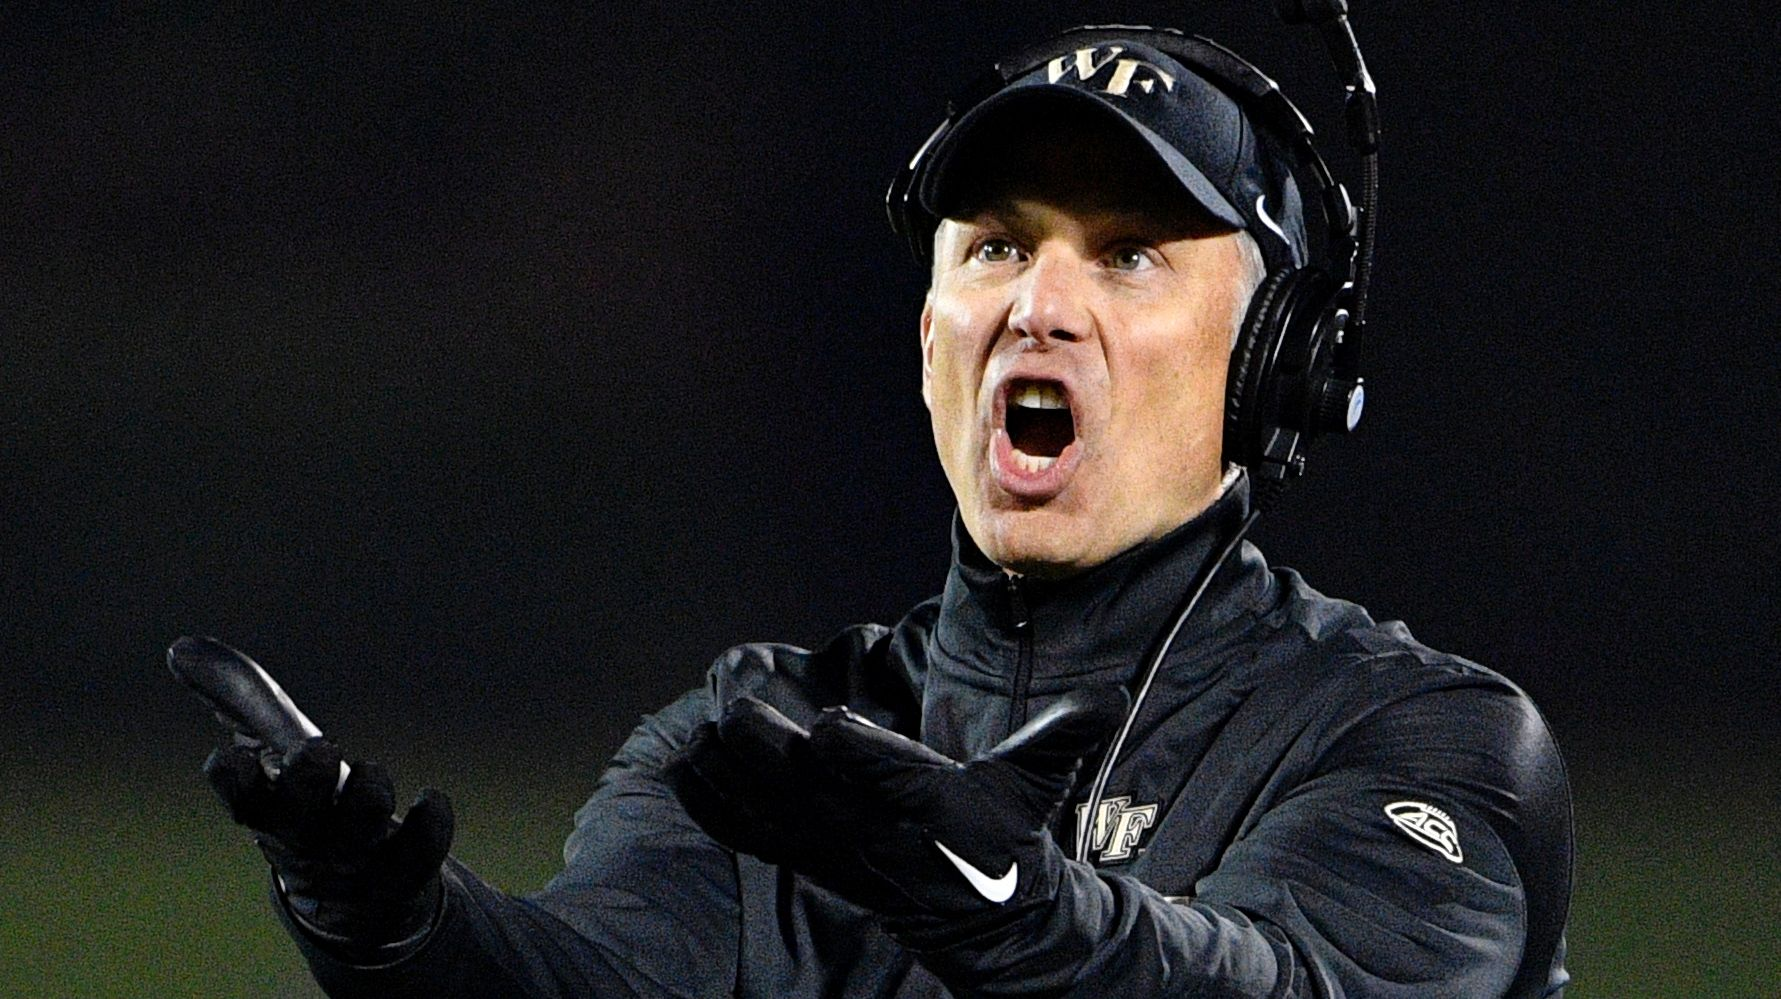 Wake Forest coach explains what happened before Louisville game